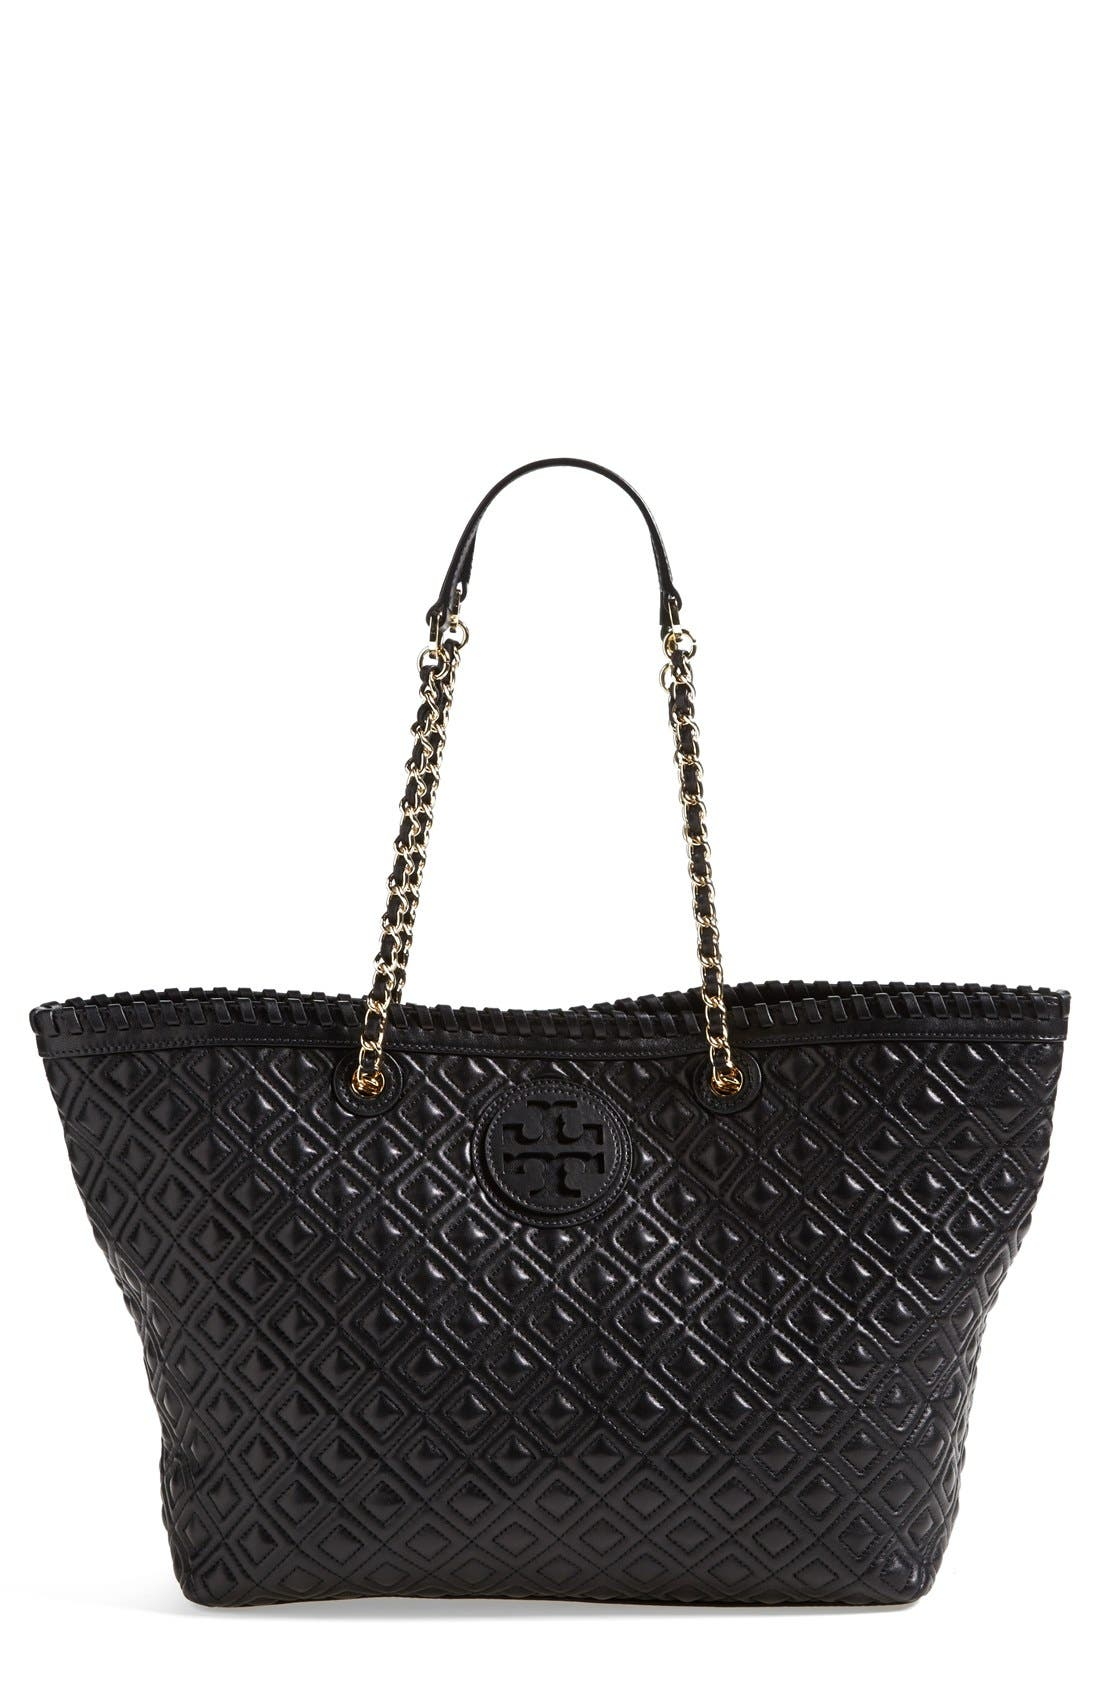 Alternate Image 1 Selected - Tory Burch 'Small Marion' Leather Tote